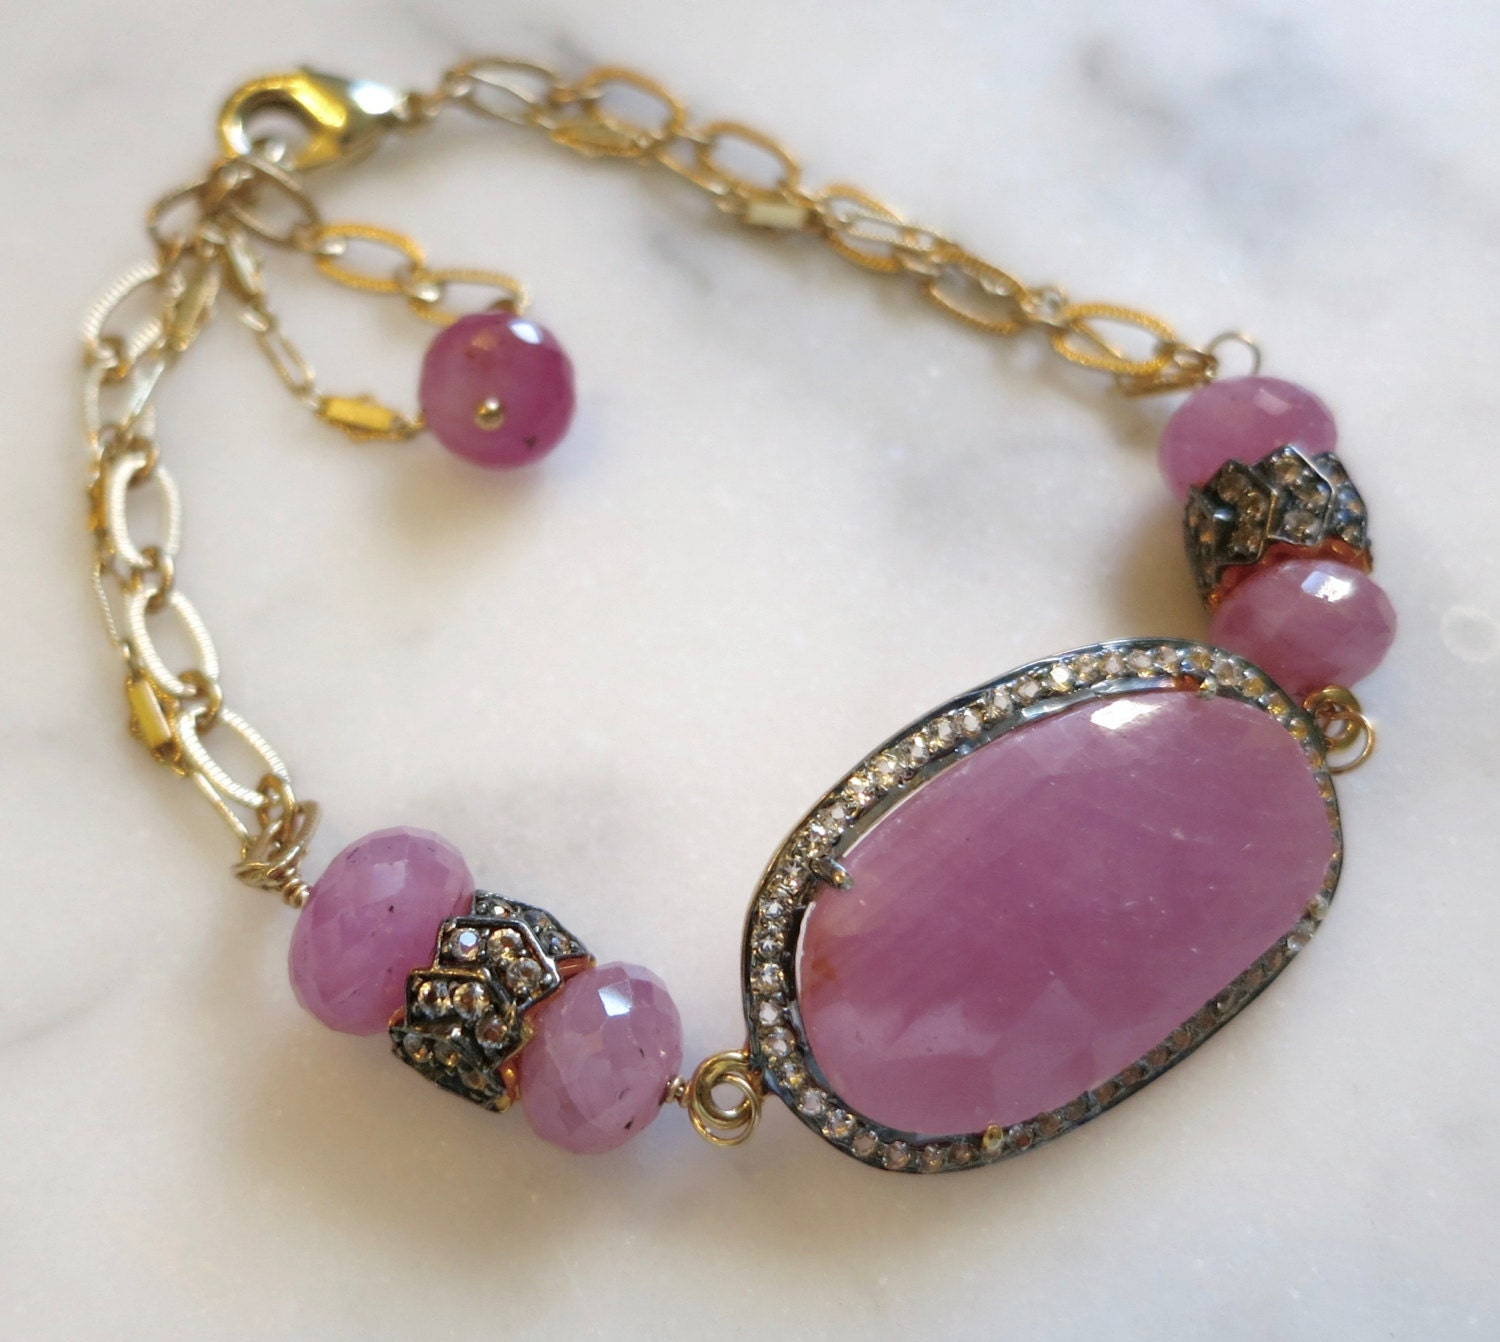 design emma gold the precious filled sapphire bracelet in wire gemstone wrapped pink